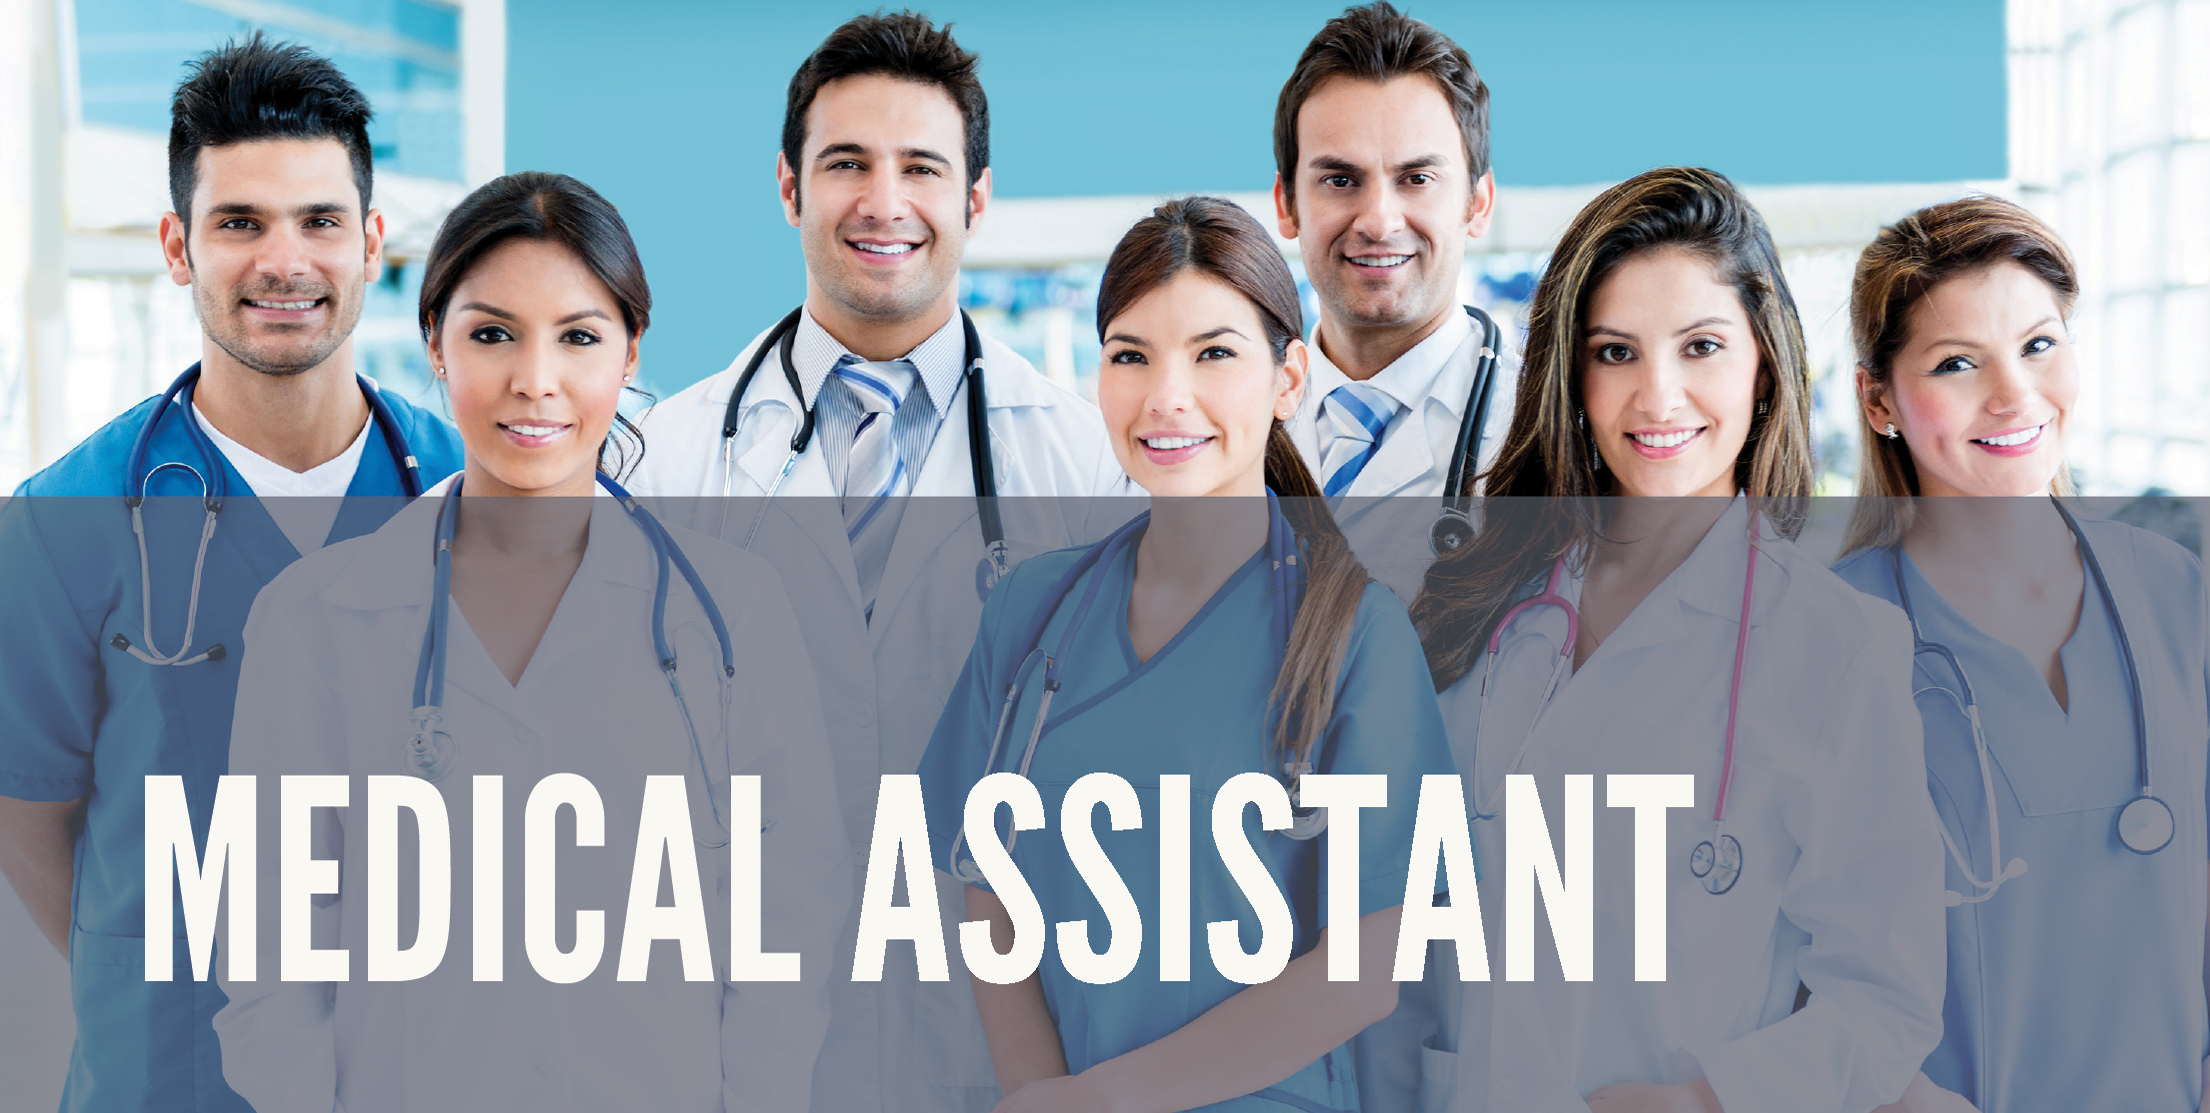 Medical Assistant - Learn to work in an ambulatory care setting and perform front and back office procedures. Curriculum approved by the National Health Career Association (NHA), and offers the following certifications: Certified Clinical Medical Assistant (CCMA).Subjects discussed in this course include: Medical Terminology, Introduction to health, Introduction to health care systems, Professional preparation for health care workers, basic math skills for health care workers, anatomy and physiology, basic patient intake, medical front desk, medical billing, pharmacology, medicine administration, phlebotomy and EKG.Course Duration: 10 weeks